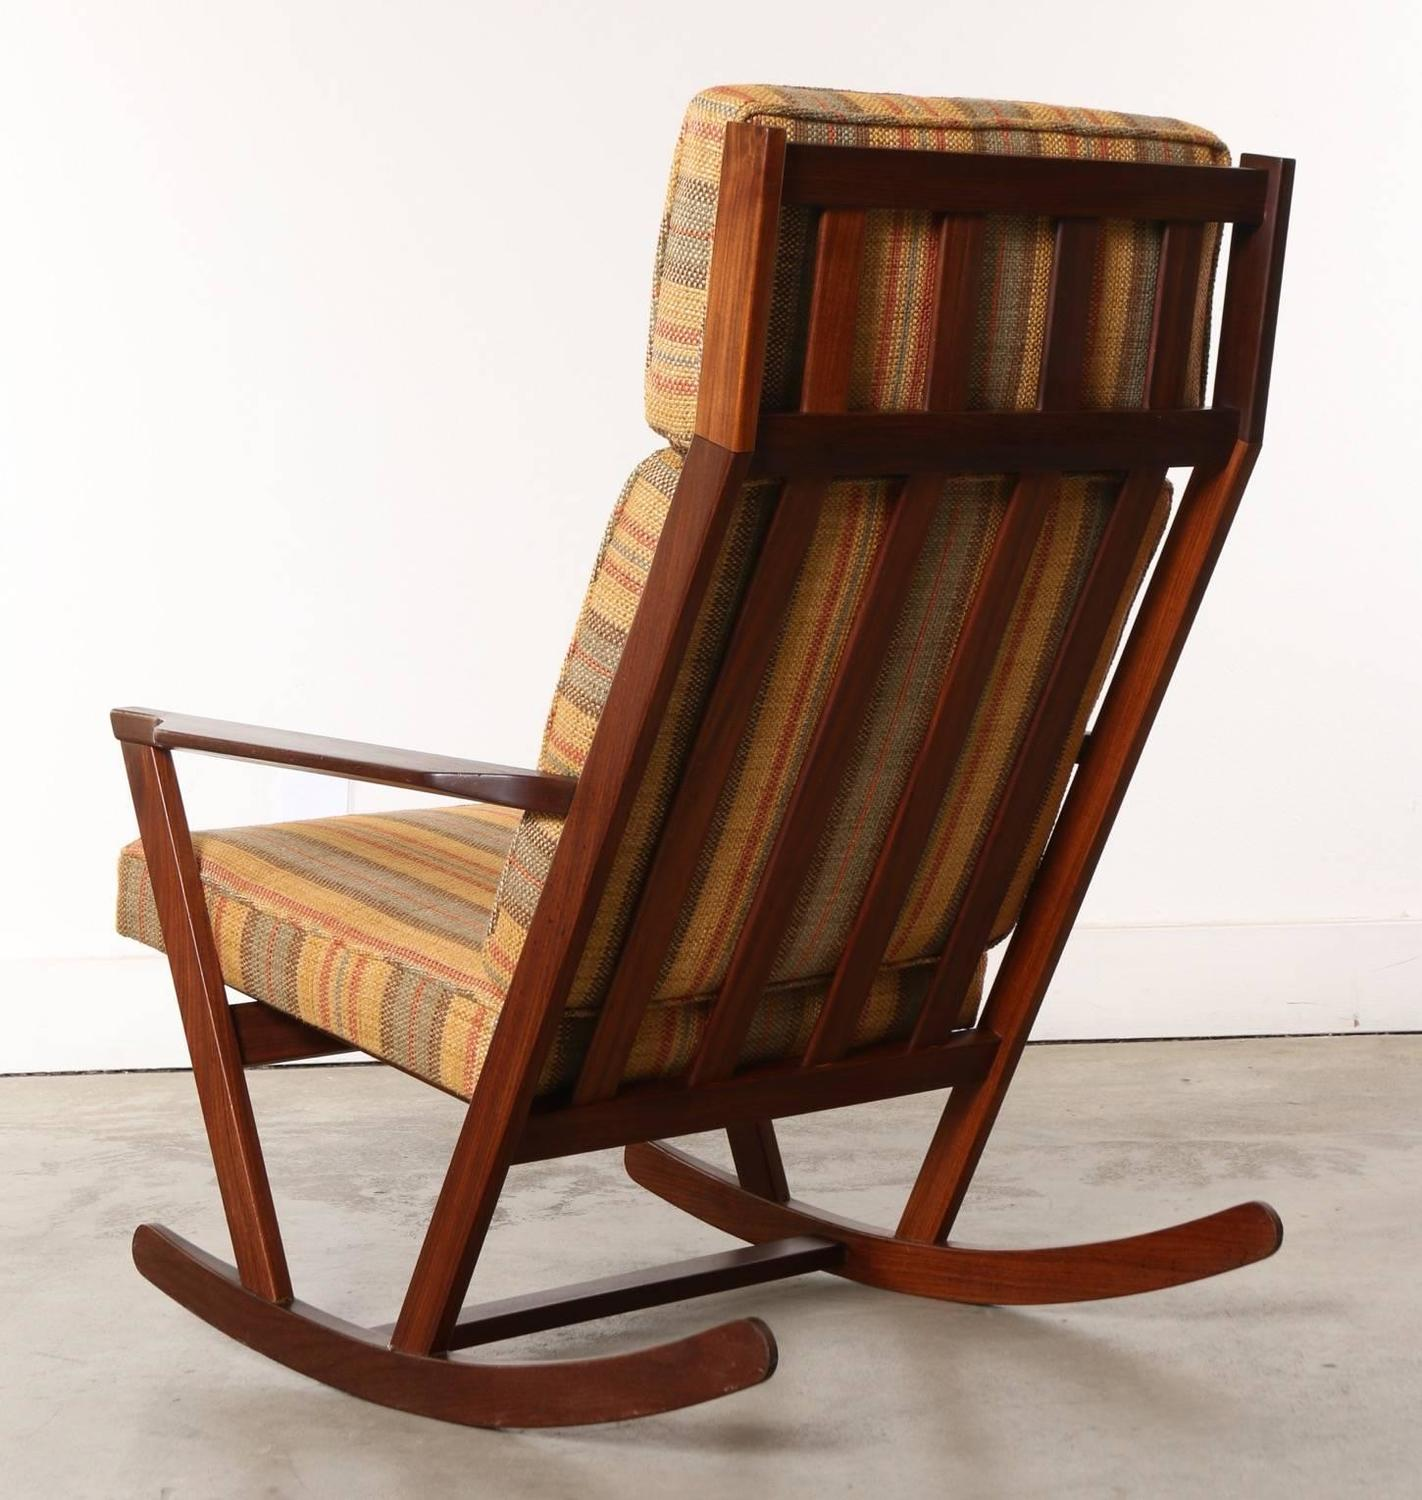 Modern Chair Pillows : Danish Modern Wooden Rocking Chair with Cushions Designed by Poul Volther, 1960s For Sale at 1stdibs